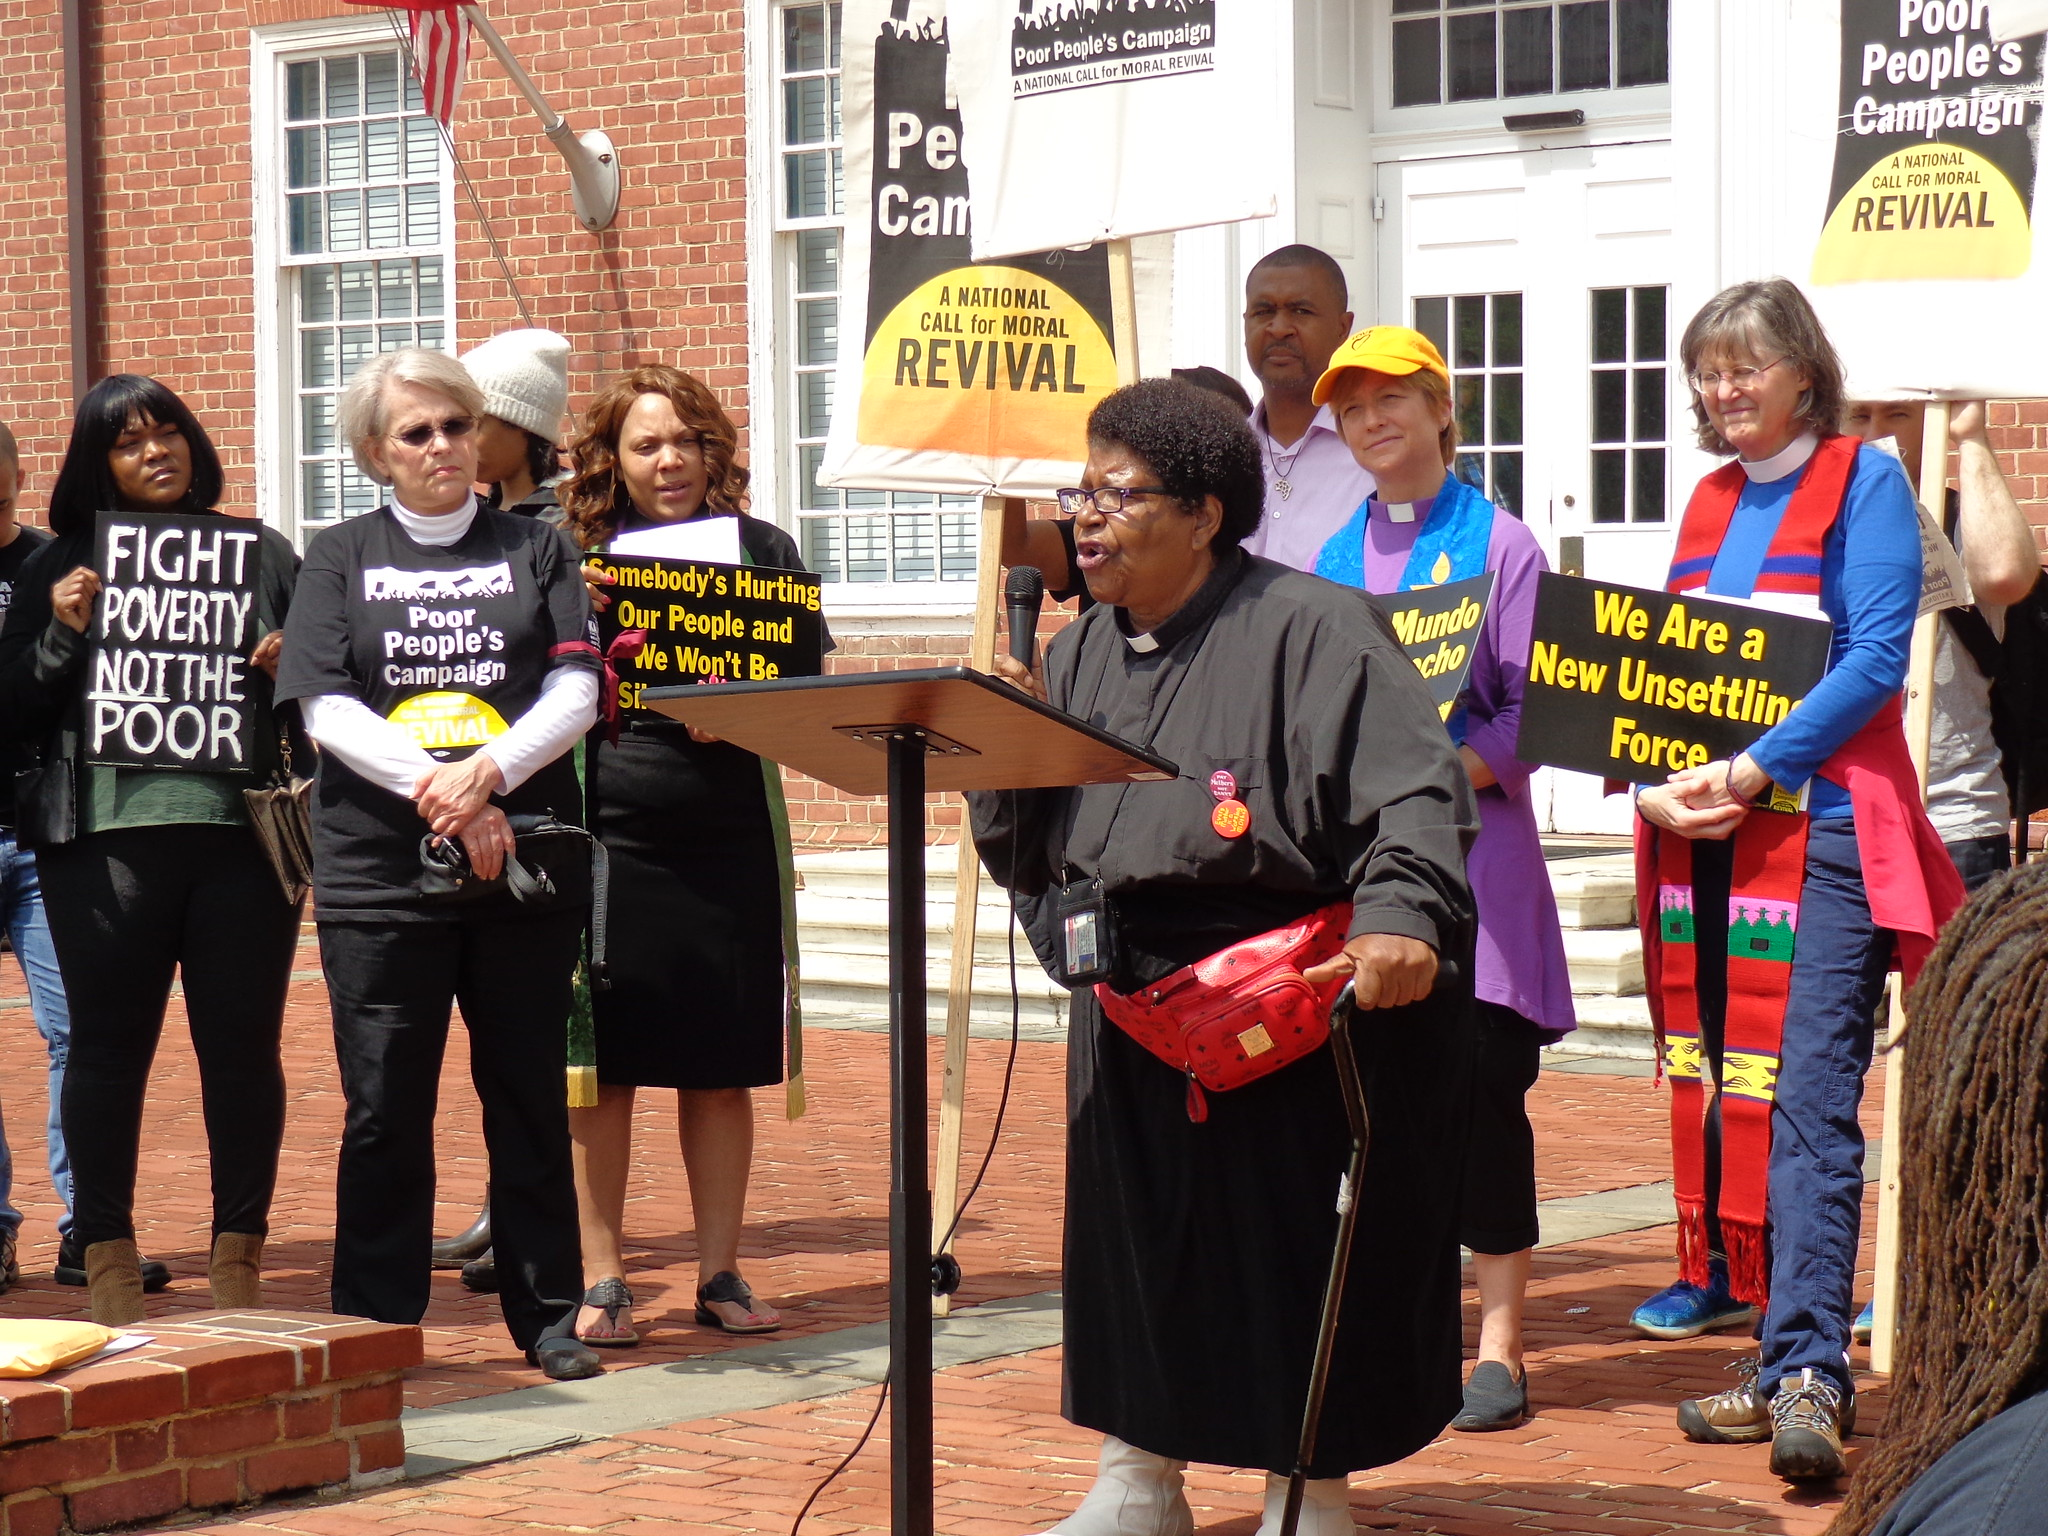 Rev. Annie Chambers, holding a cane and speaking from an outdoor podium. A line of other clergy stand behind her, some in vestments and all holding signs related to the Poor People's Campaign.